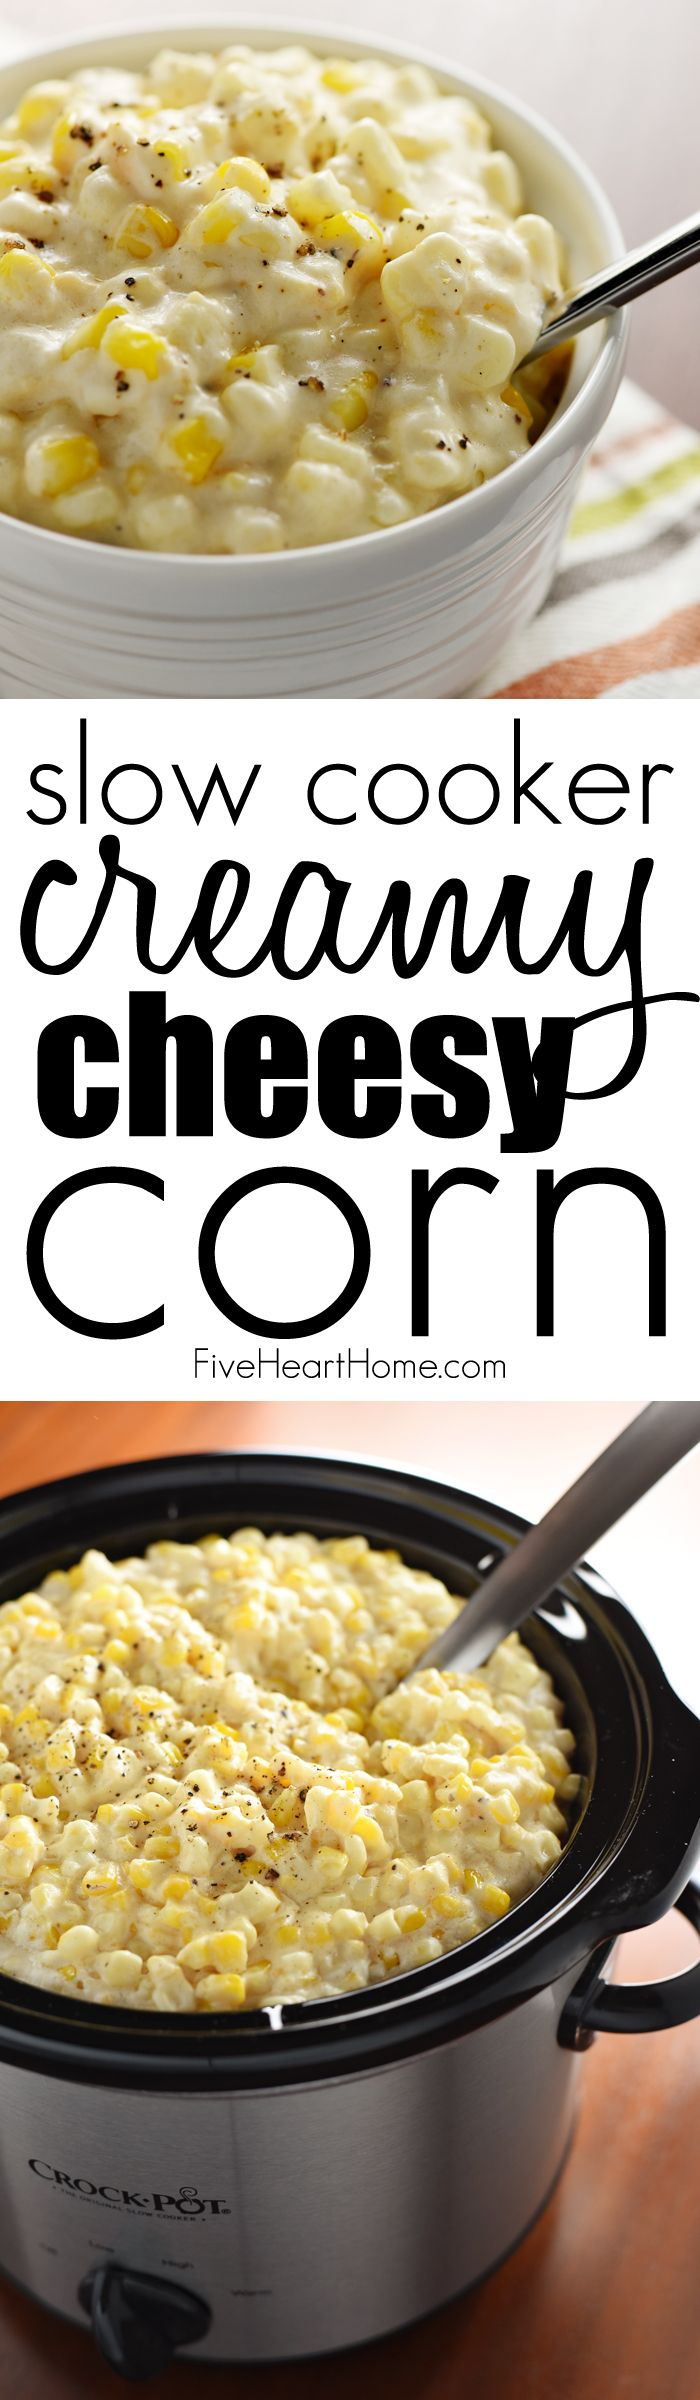 All Food and Drink: Slow Cooker Creamy Cheesy Corn